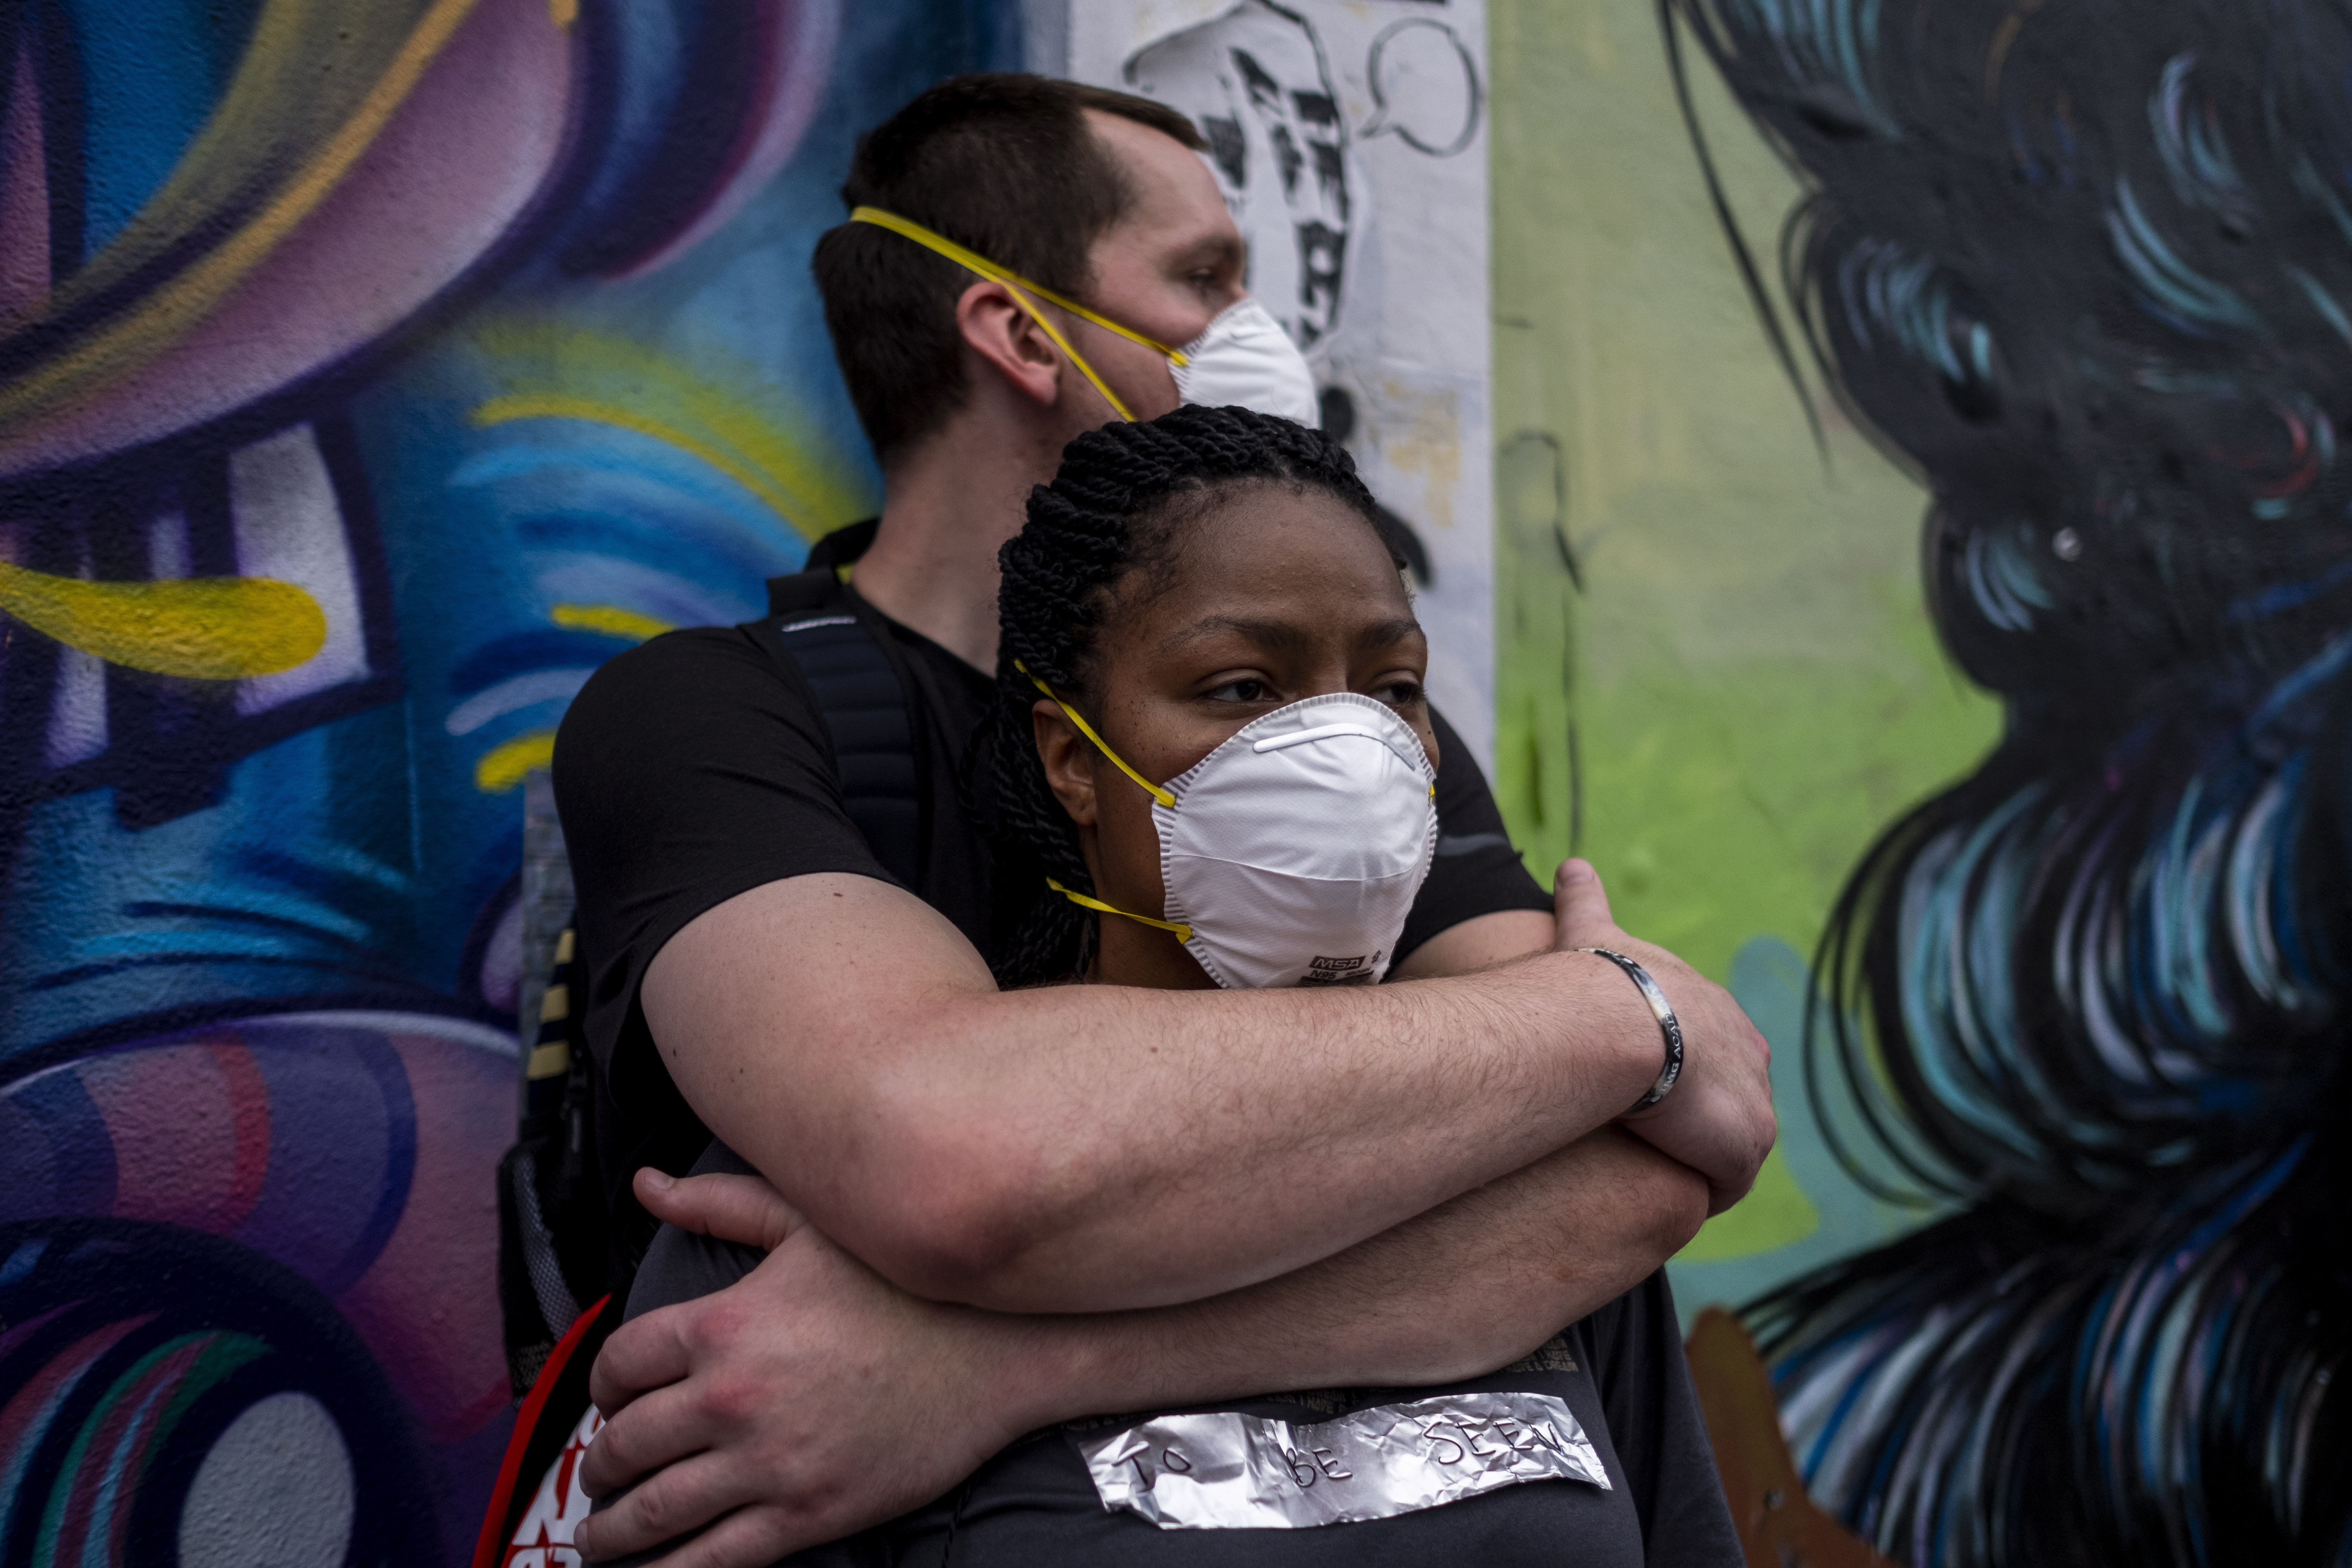 Protestors embrace during a rally in response to the recent death of George Floyd in Miami, Florida on June 2, 2020. (Photo by…